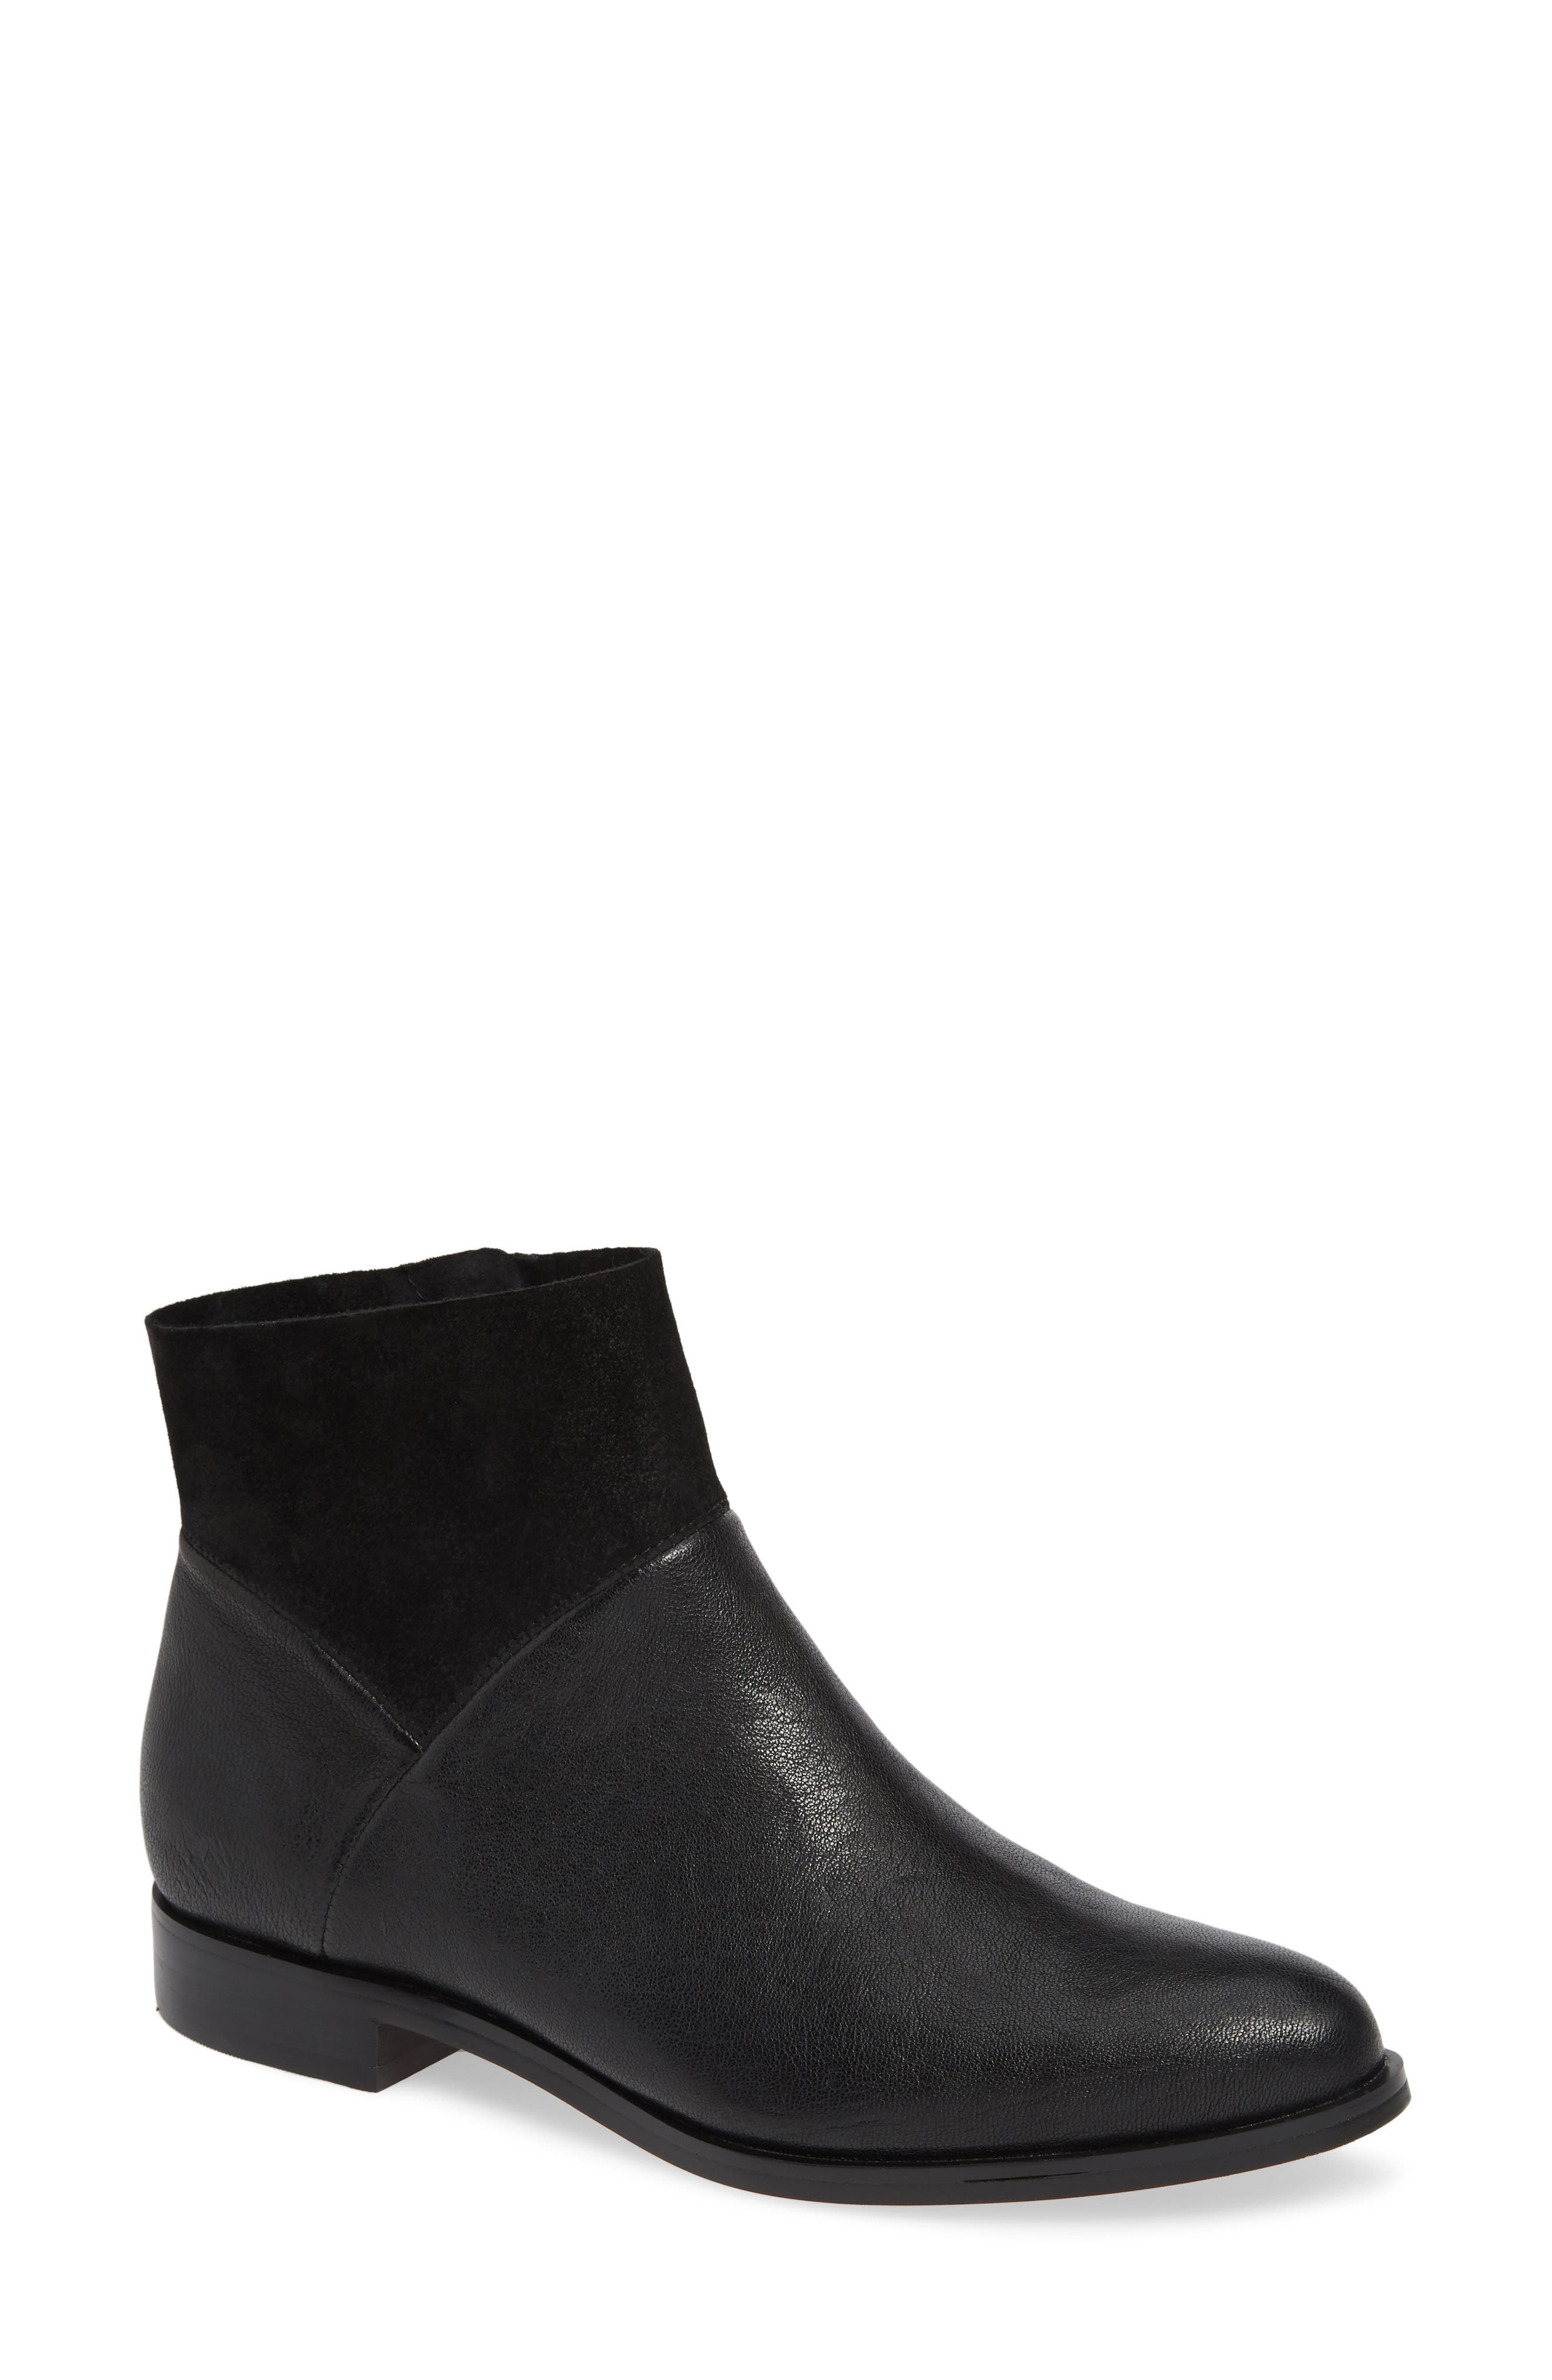 ISOLÁ, Isola Mosina Bootie, Main thumbnail 1, color, BLACK LEATHER